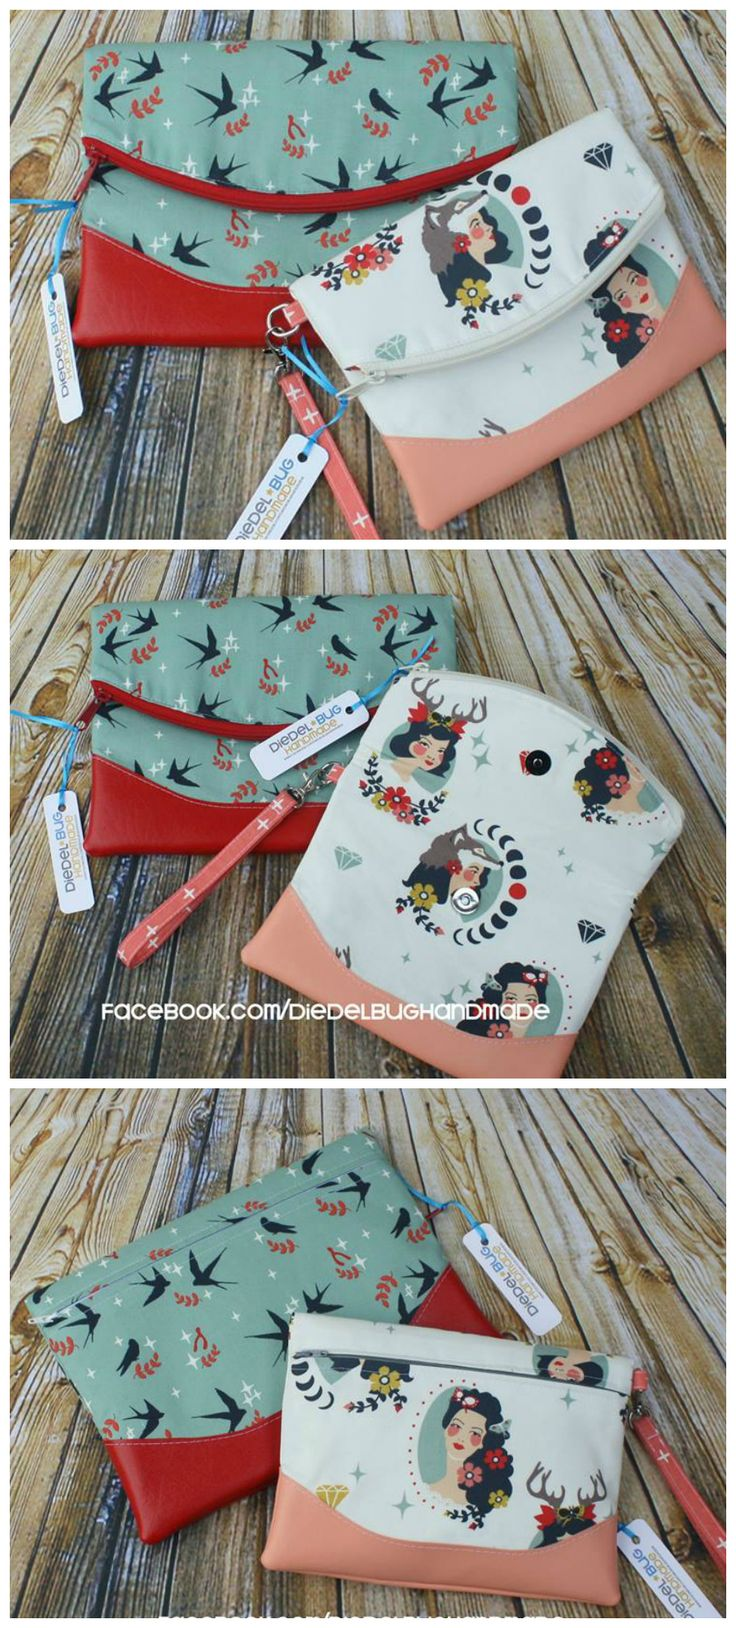 Free foldover clutch purse sewing pattern. The Heidi bag from Swoon patterns. Photos by Erin Morris